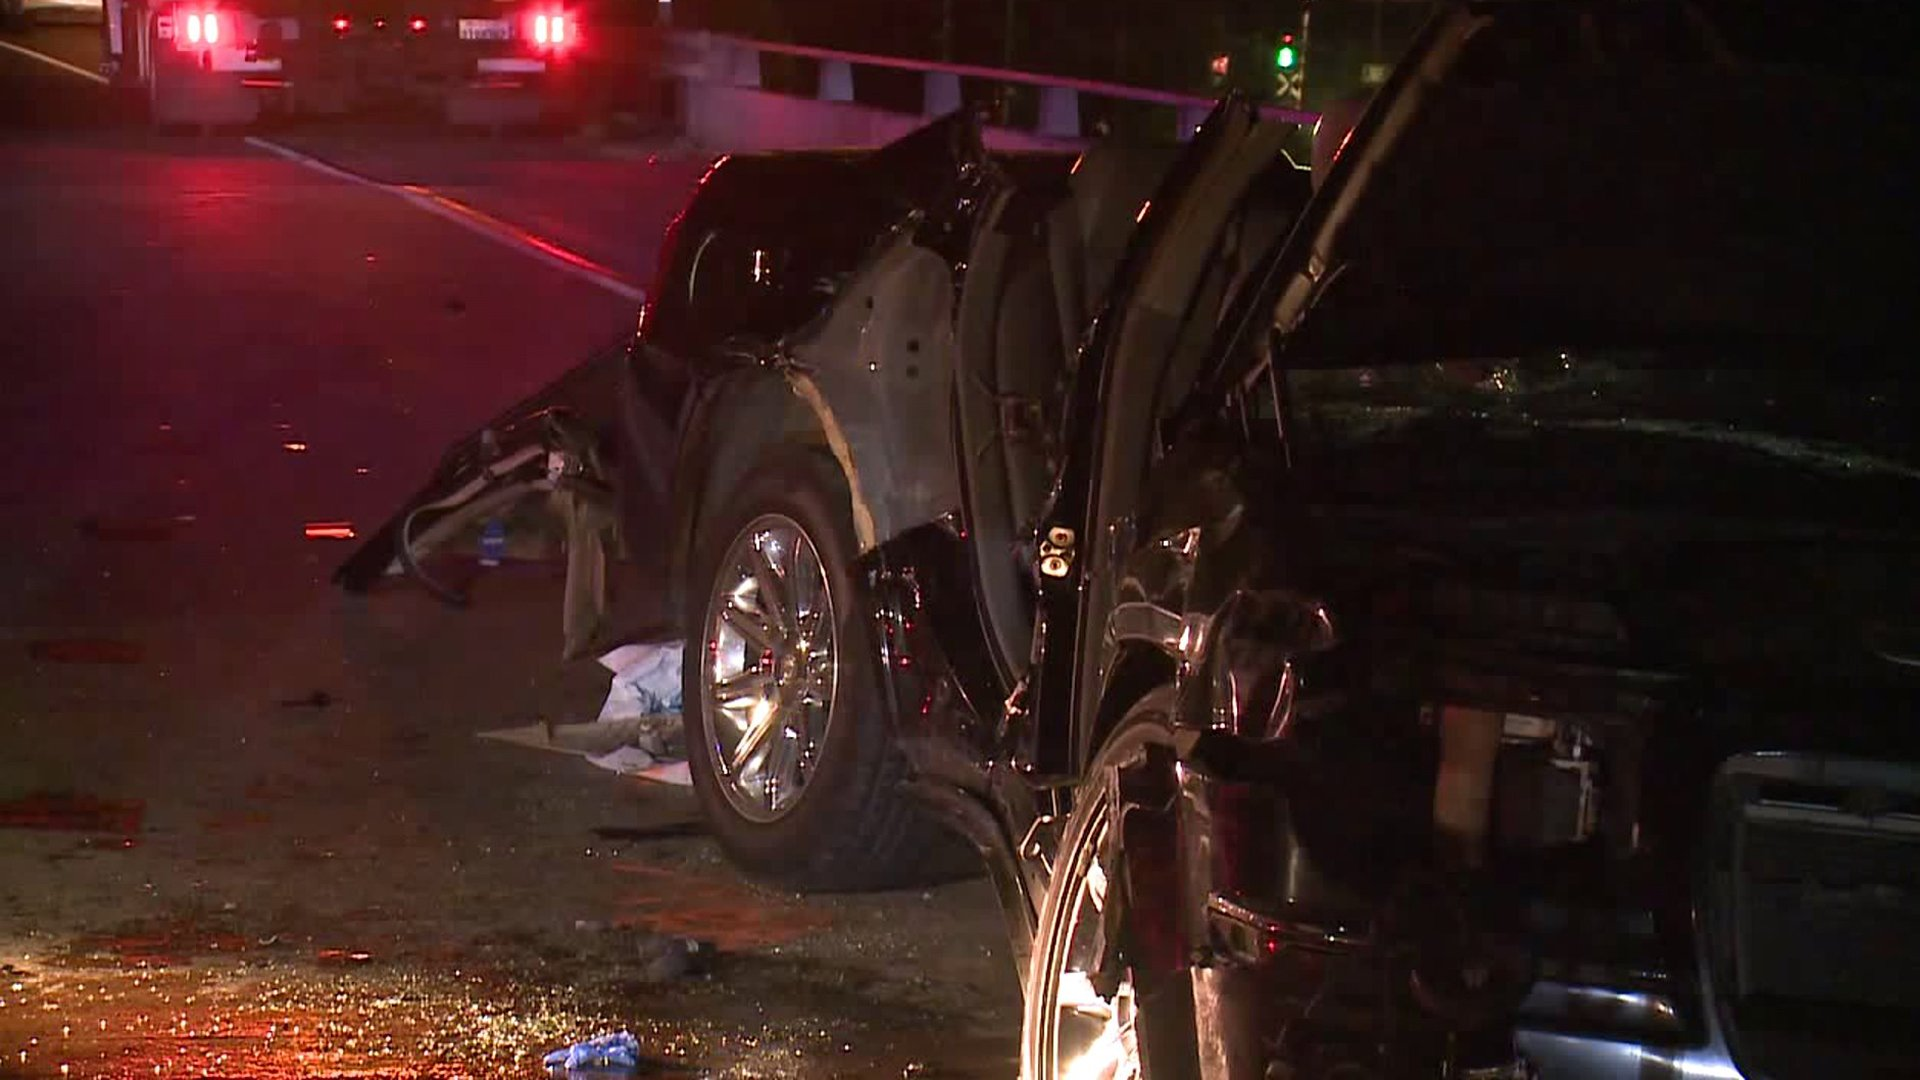 CHP investigated a fatal crash on State Route 905 in Otay Mesa on Jan. 7, 2020. (Credit: KSWB)